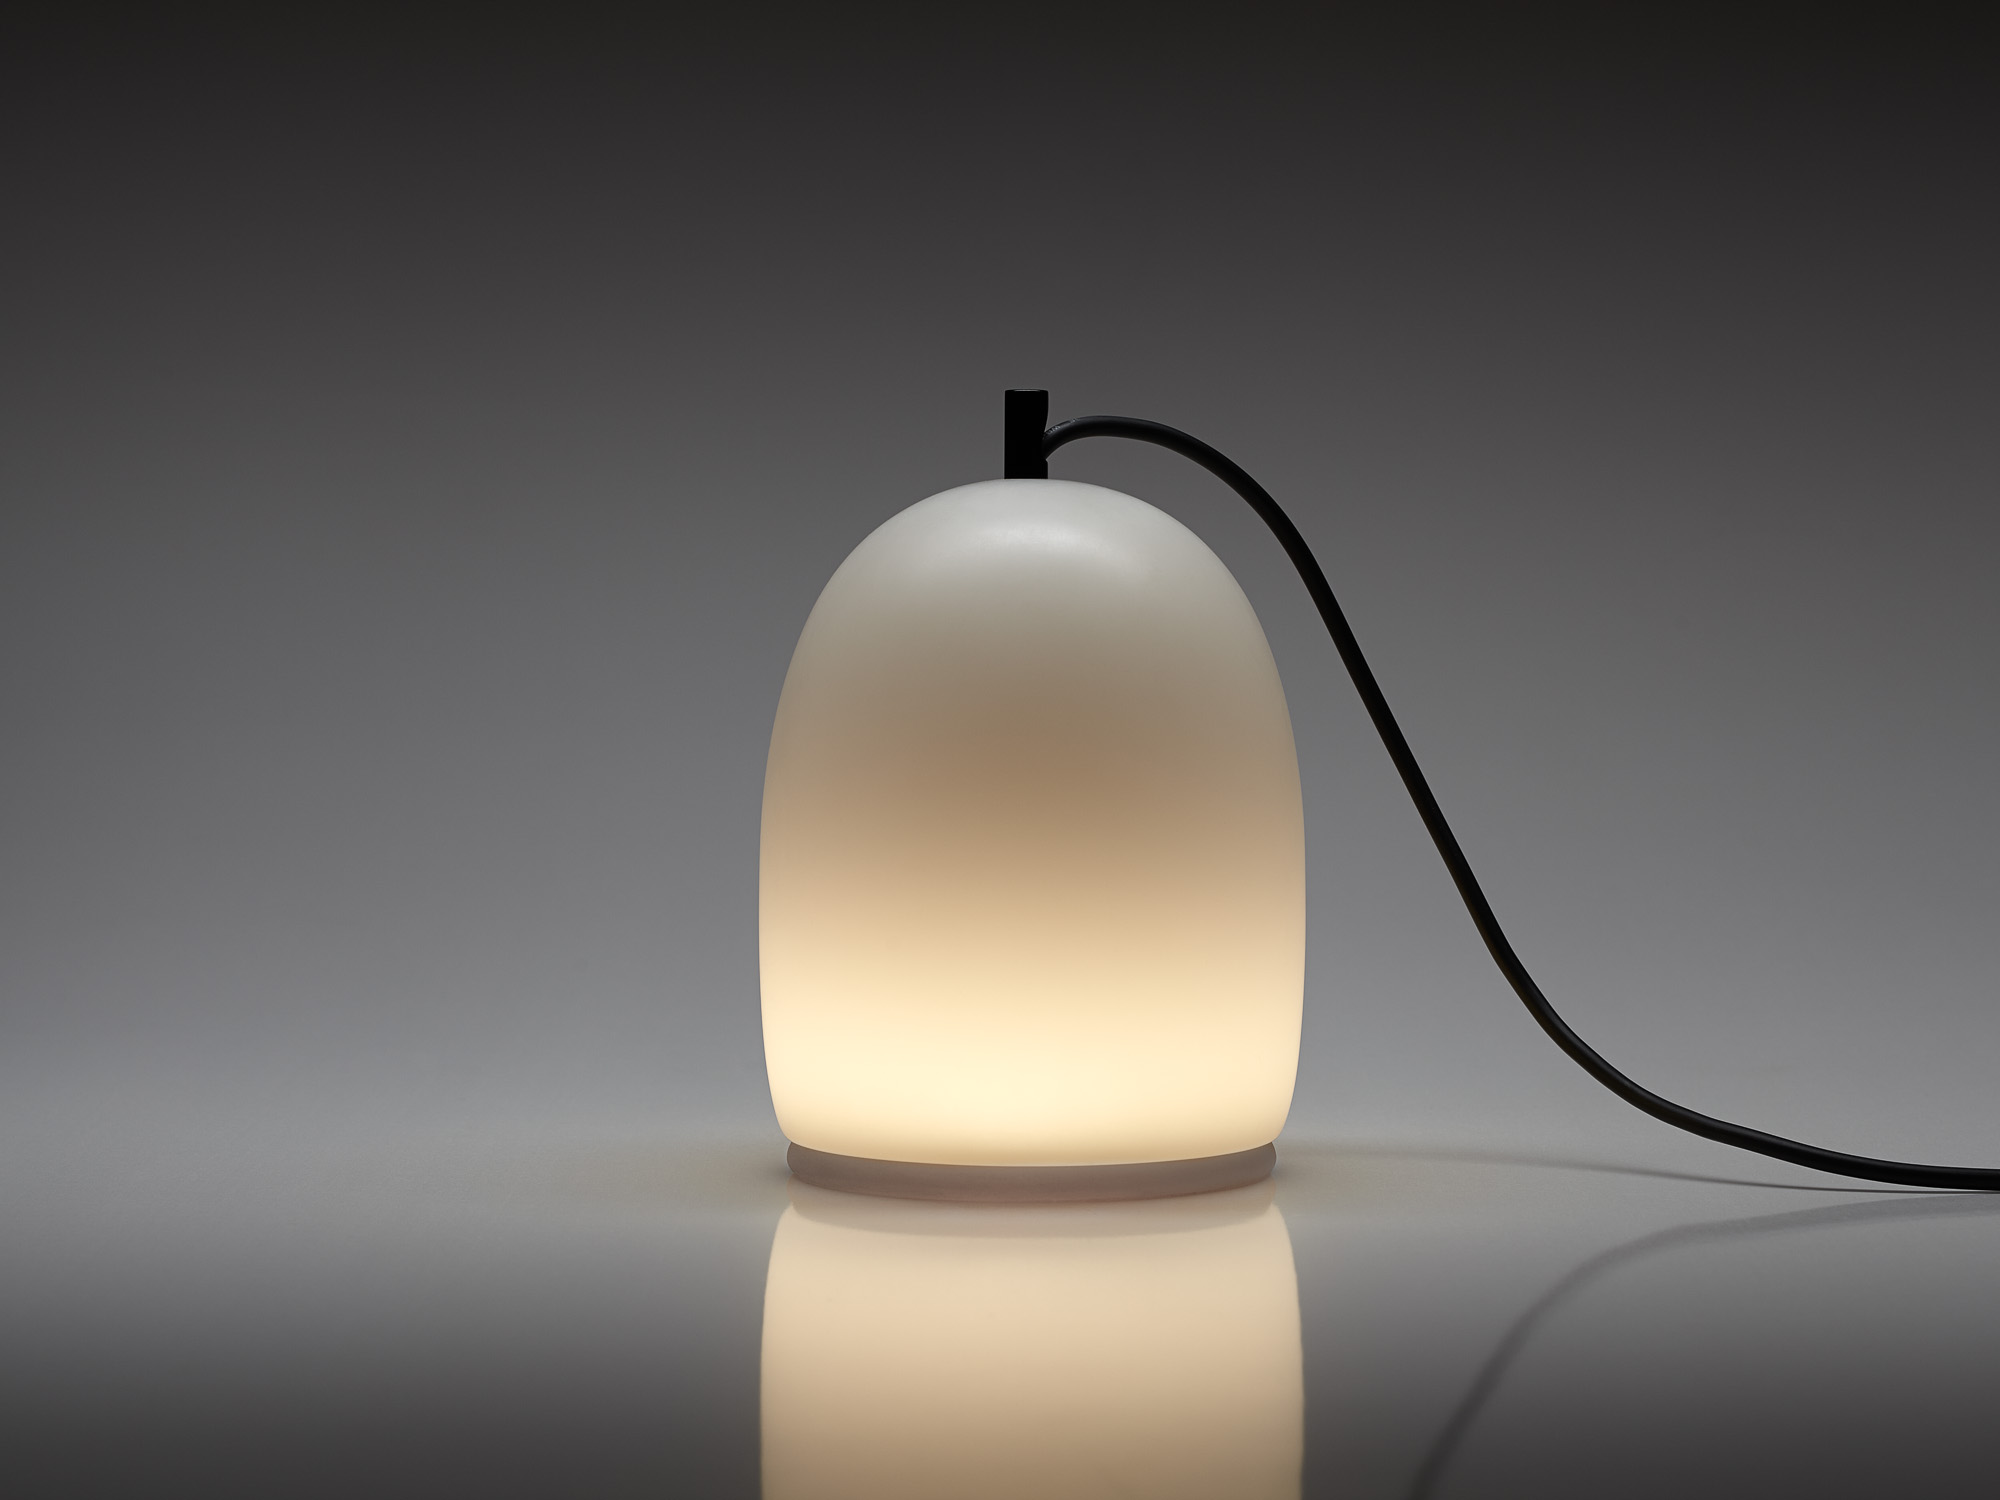 Gradient lamp by daast 002